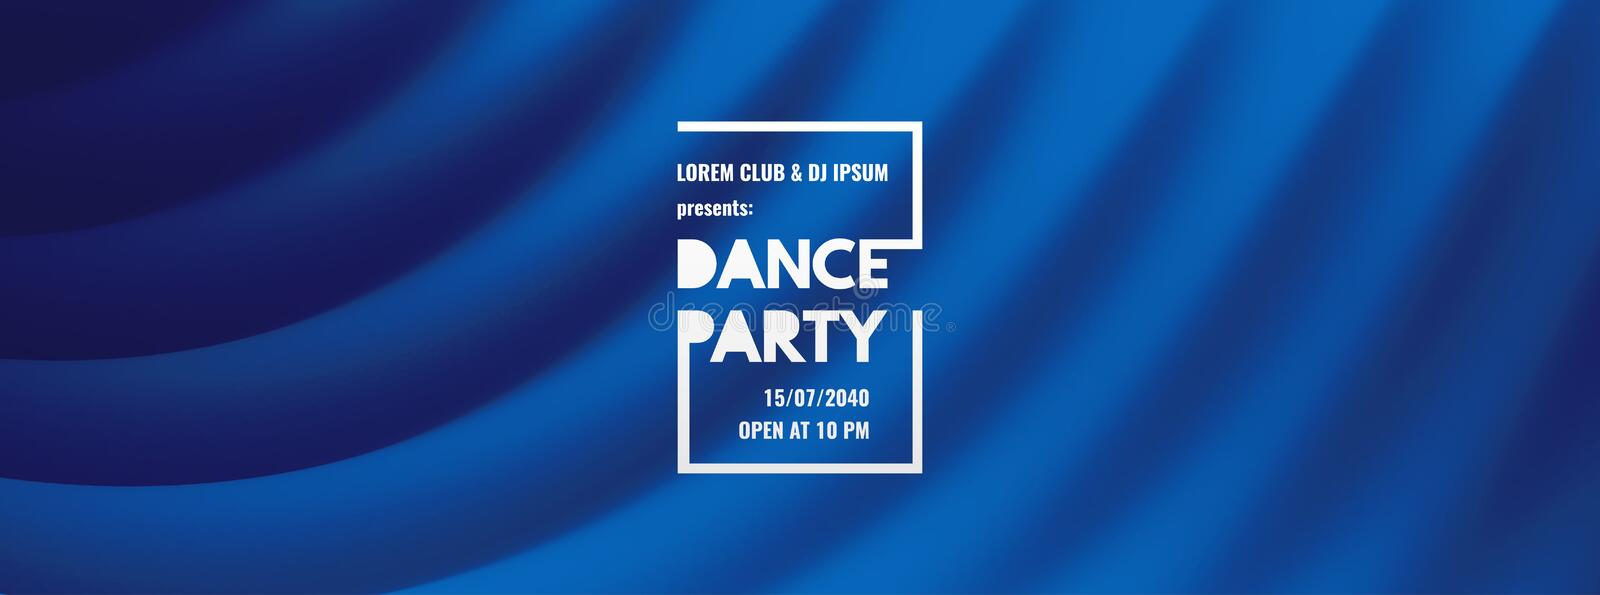 Dance party invitation with date and time details. Theatre blue curtain. Music event flyer or banner. 3D wavy background with royalty free illustration